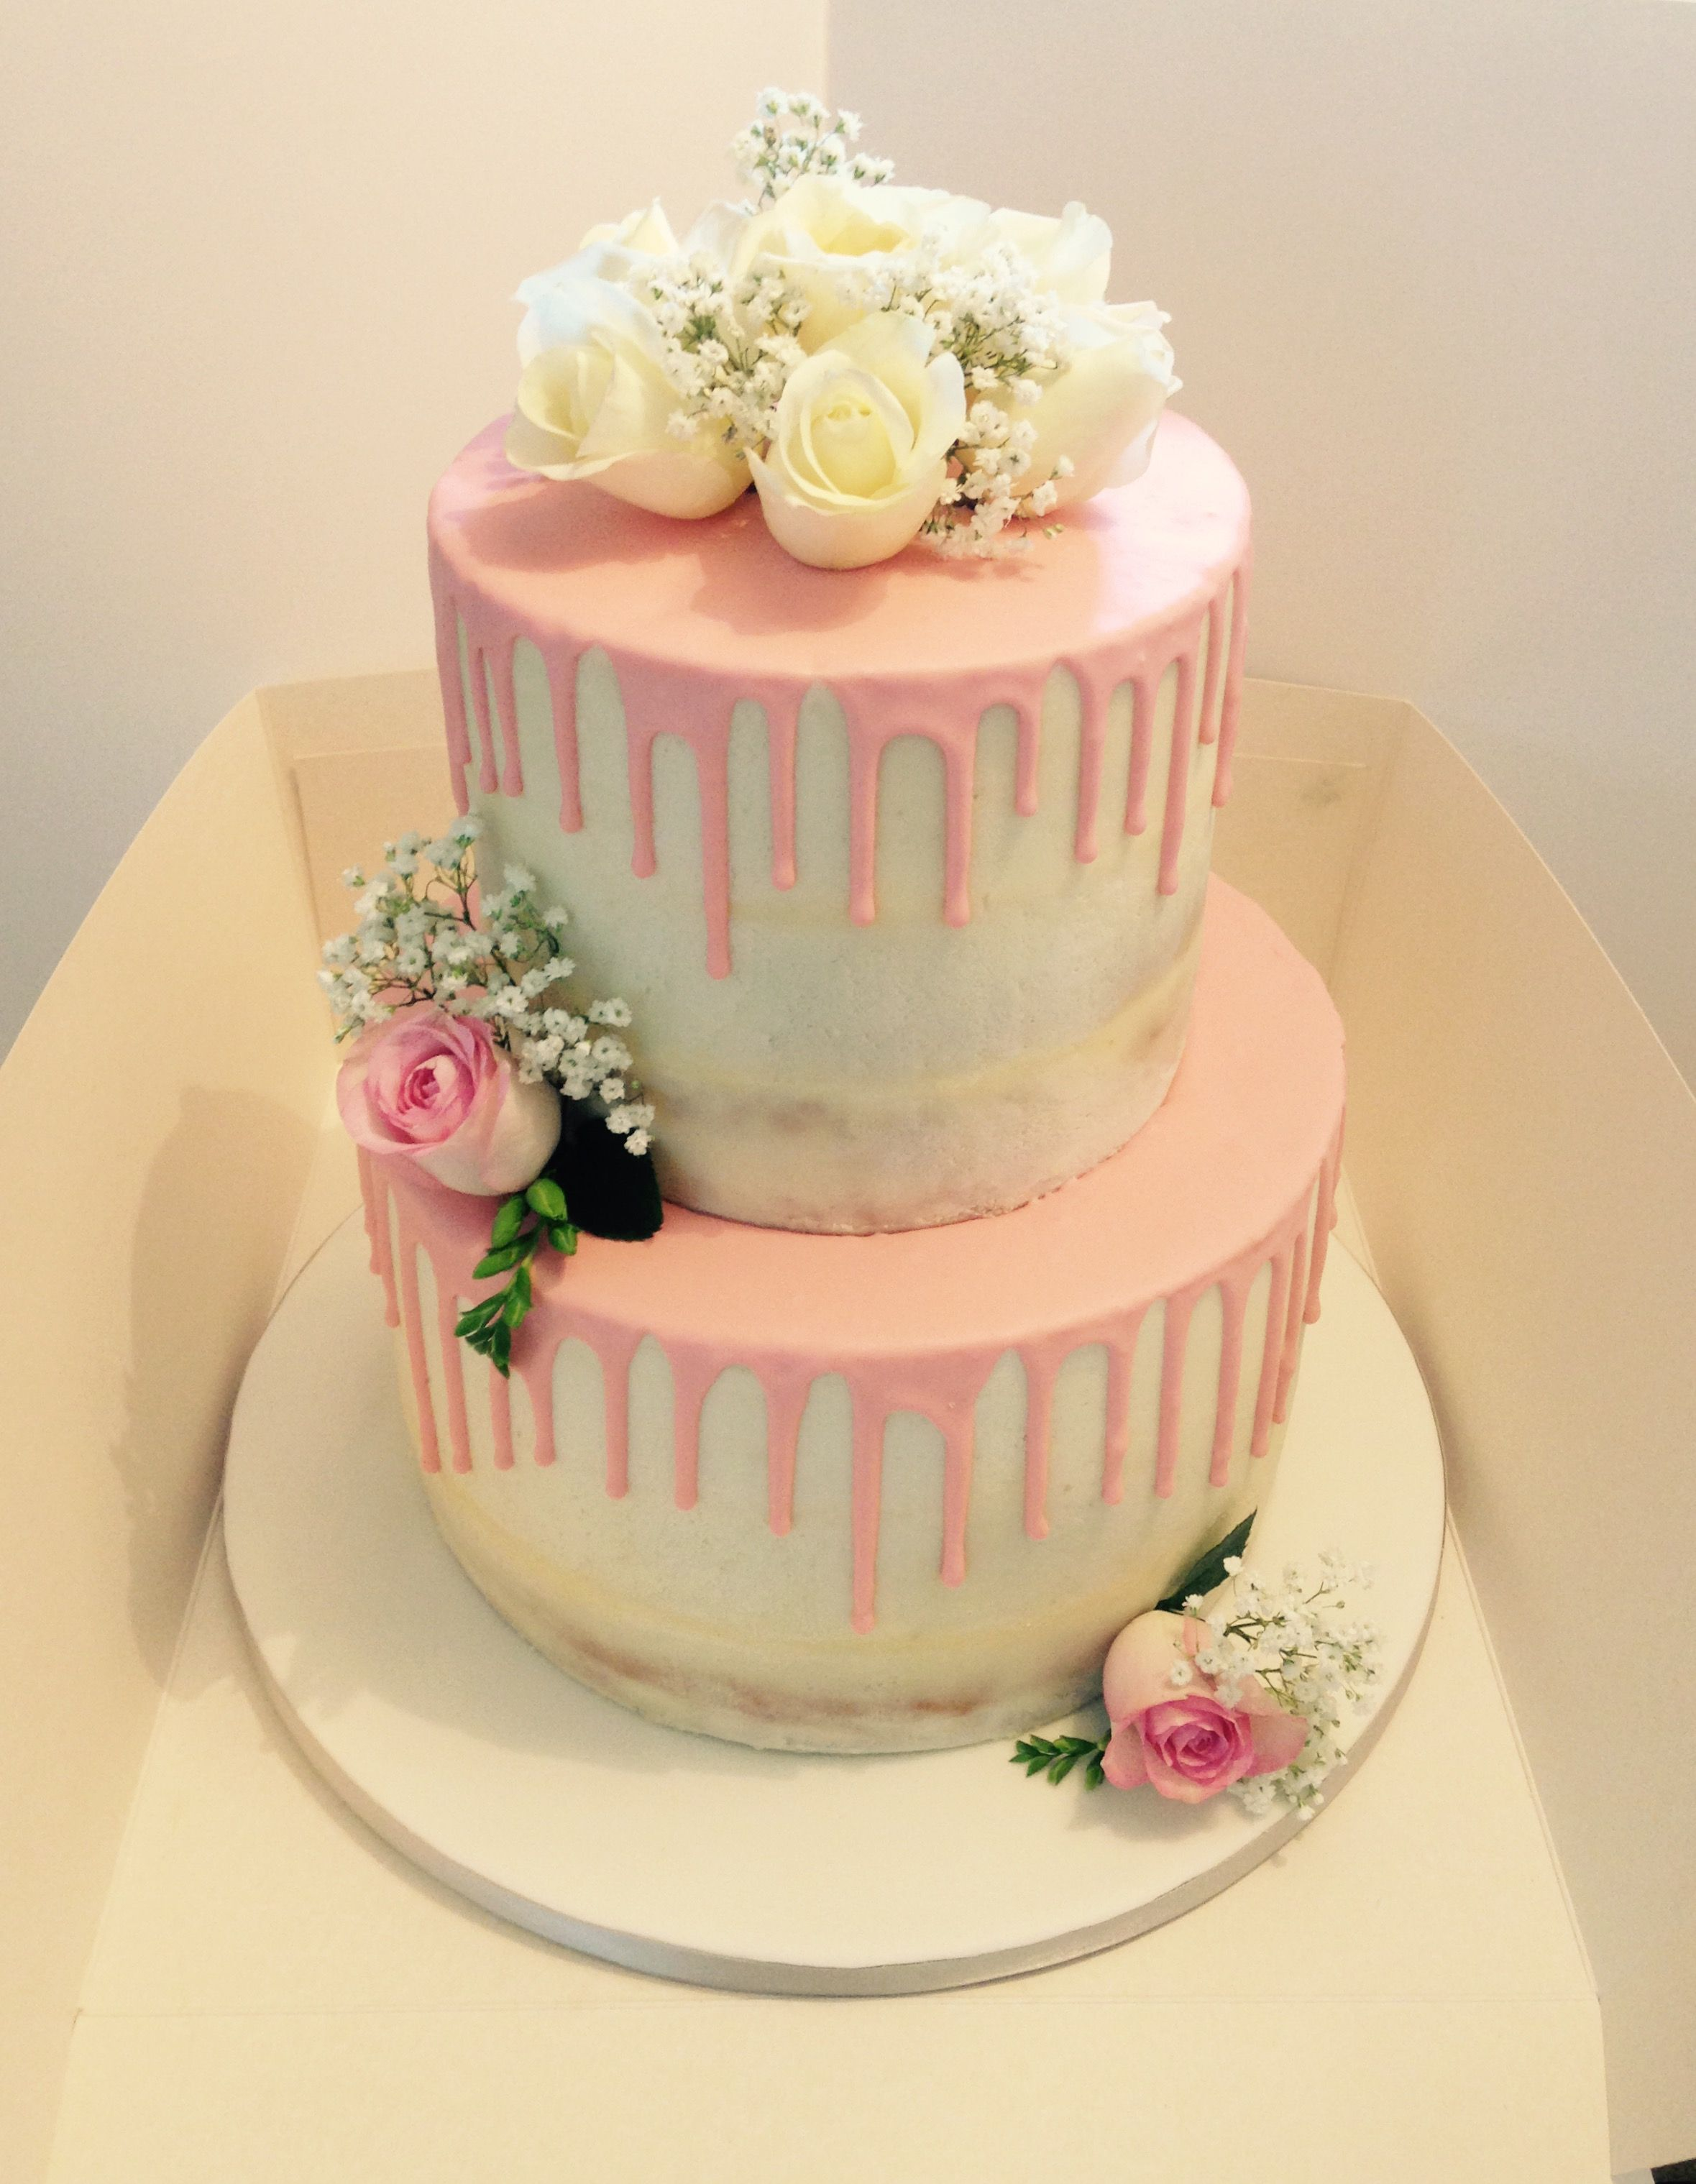 Semi naked cake with drip effect and roses | Wedding cakes by me ...